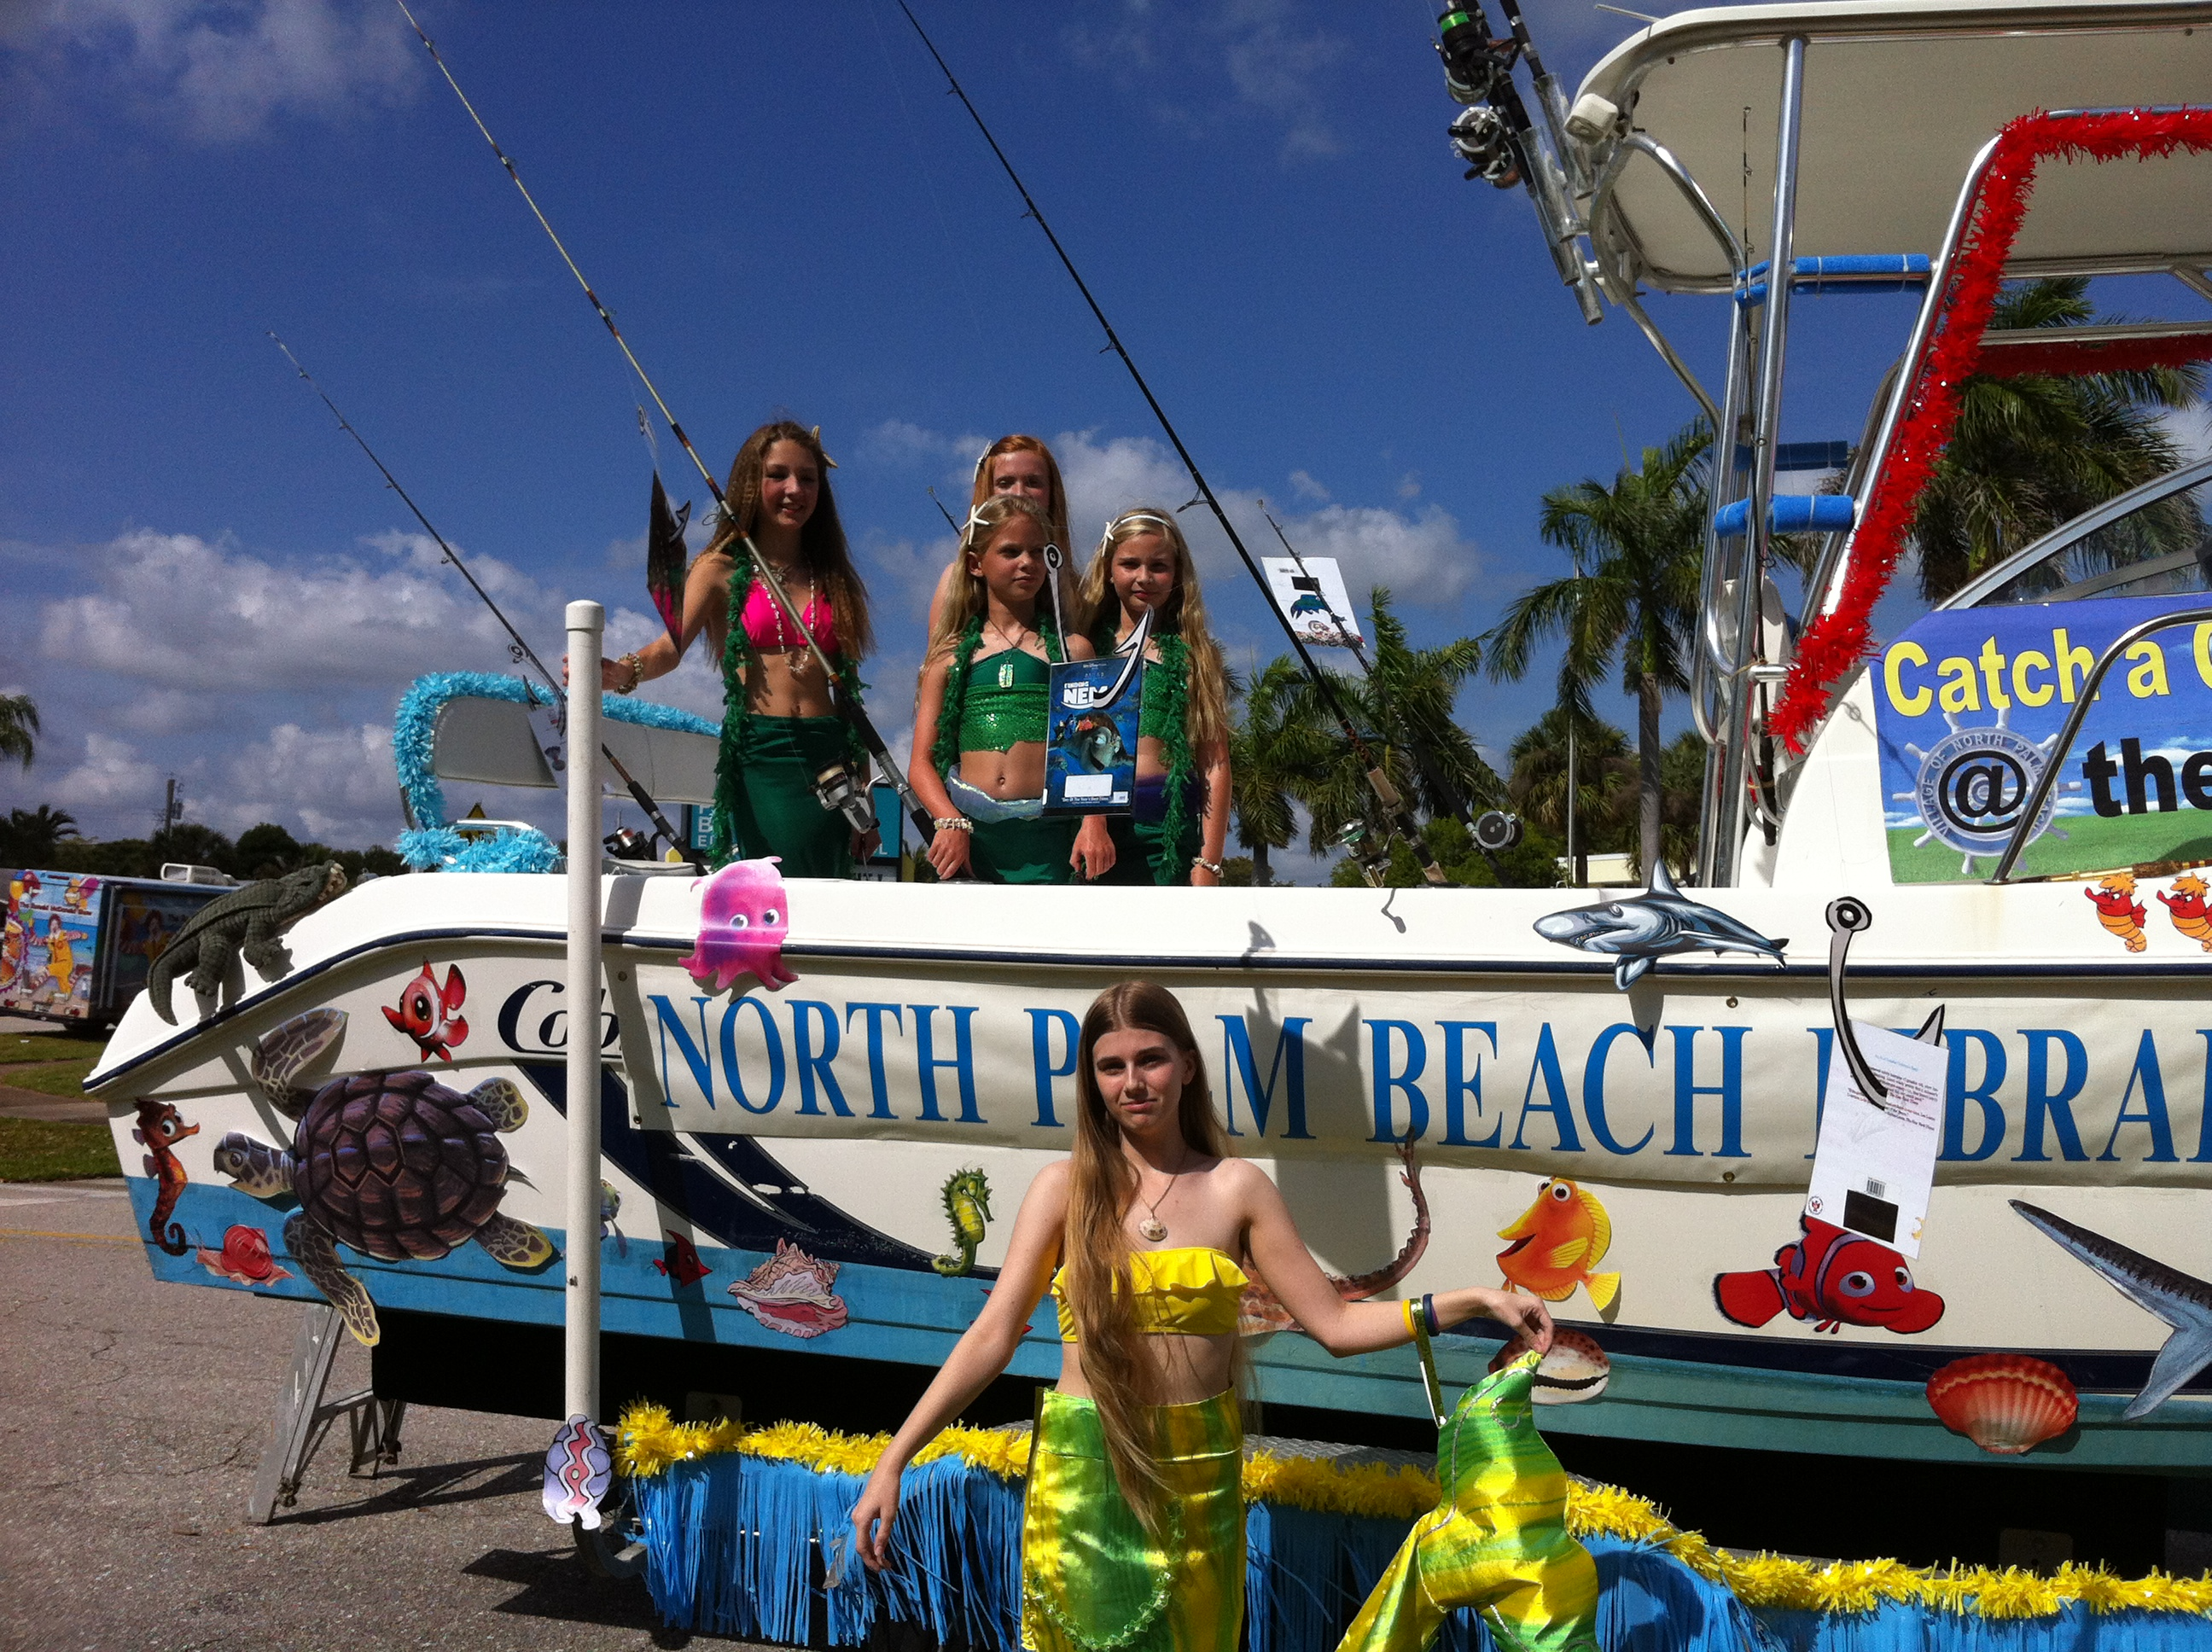 The mermaid stands in front of the float, with the other sea-ladies on the float